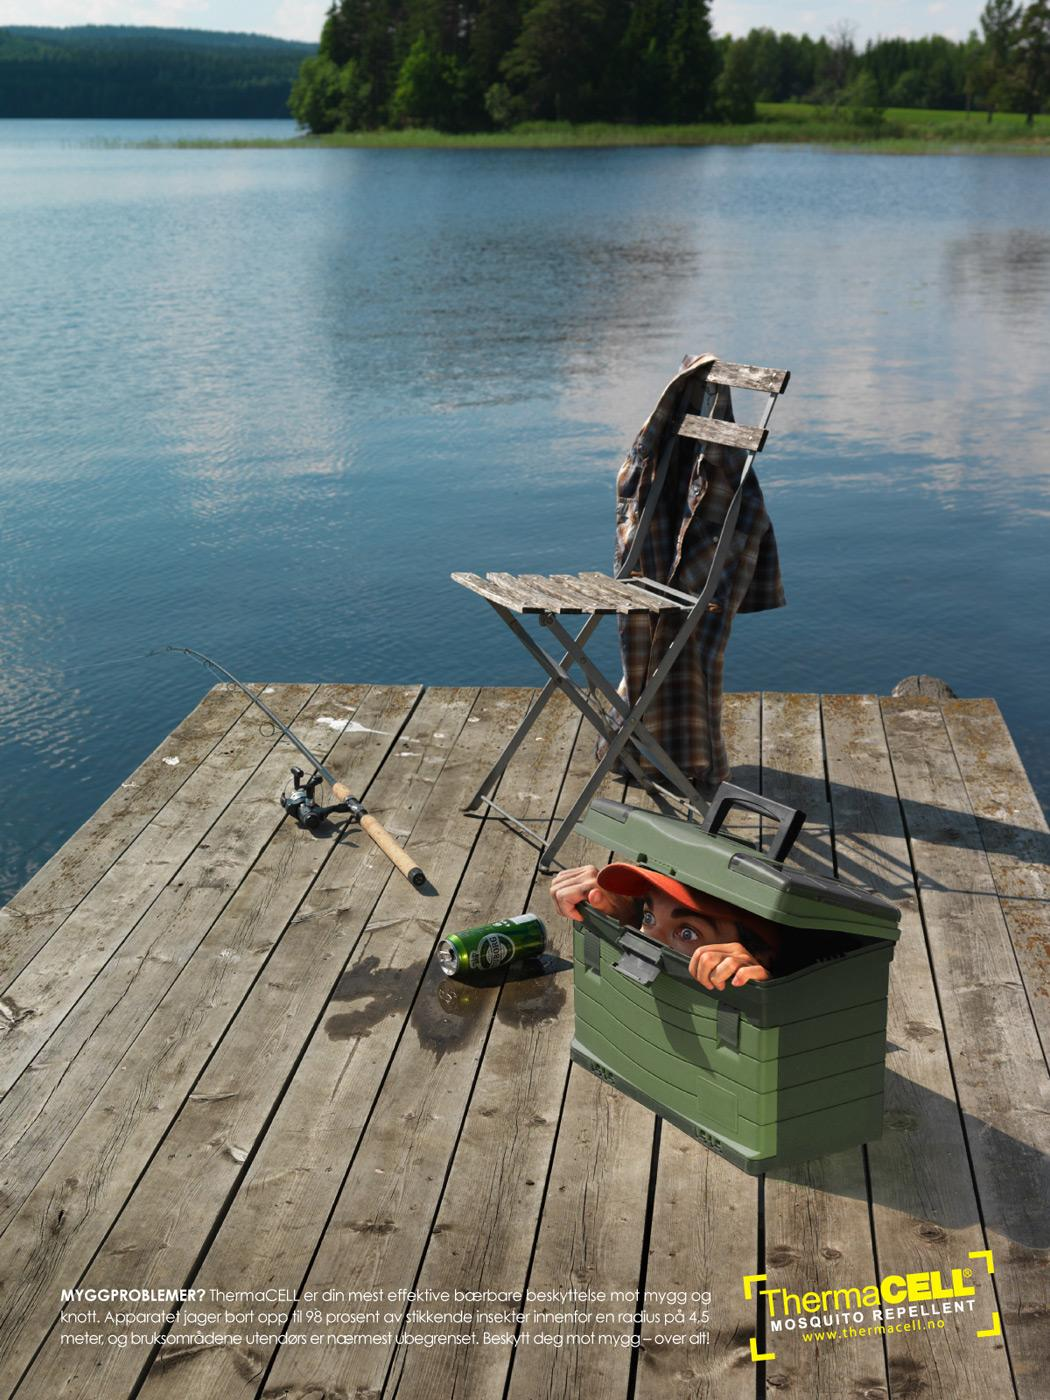 ThermaCELL Print Ad -  Fishing